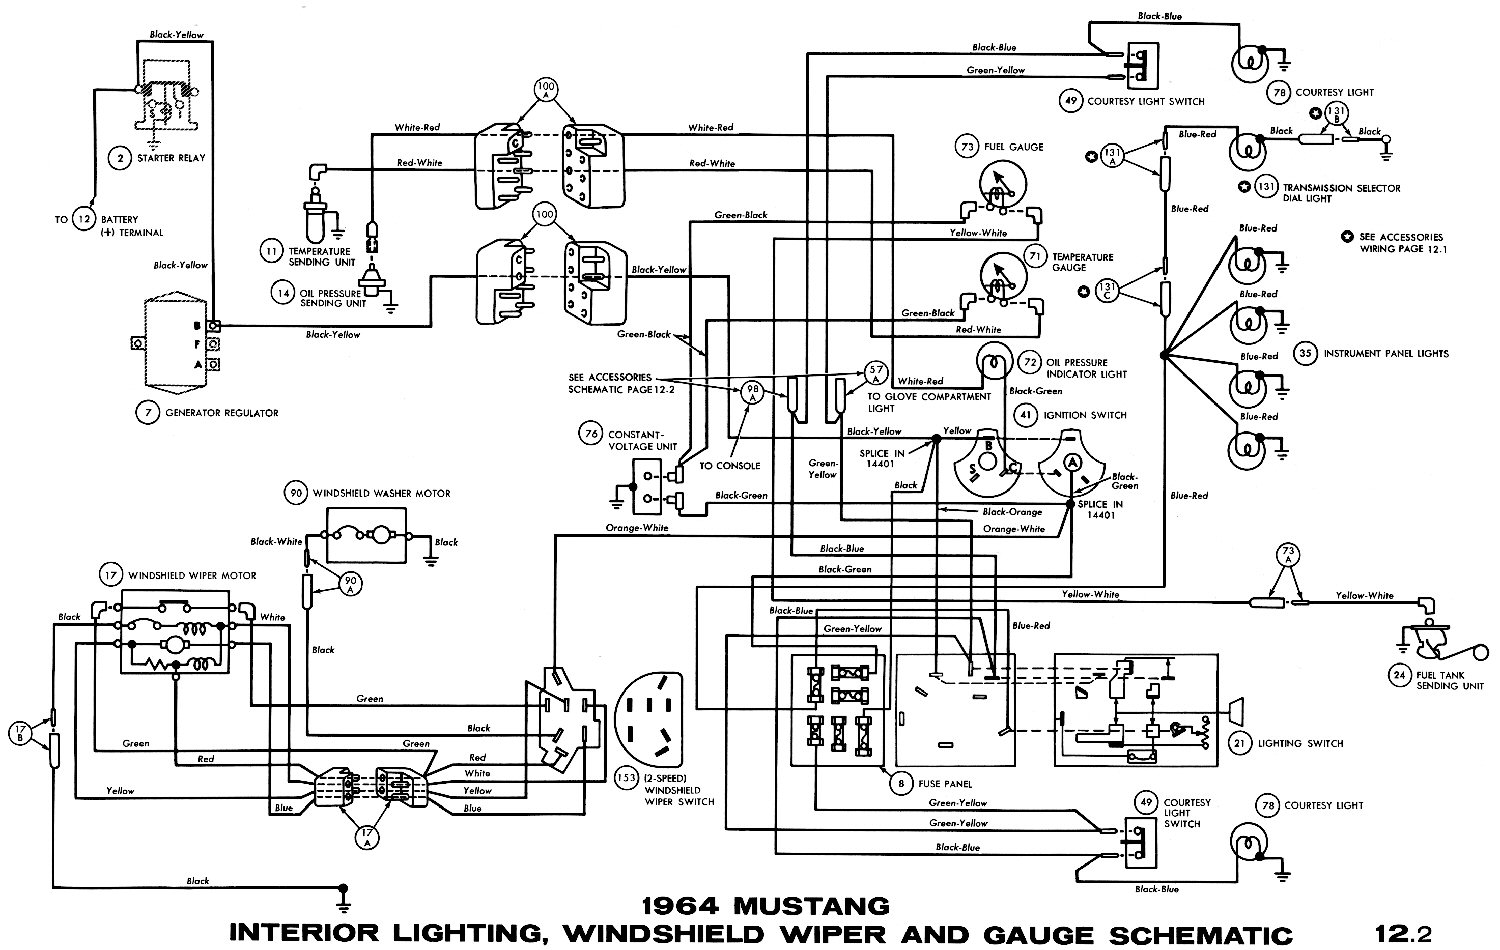 1964k 1964 mustang wiring diagrams average joe restoration 1964 ford wiring diagram at aneh.co